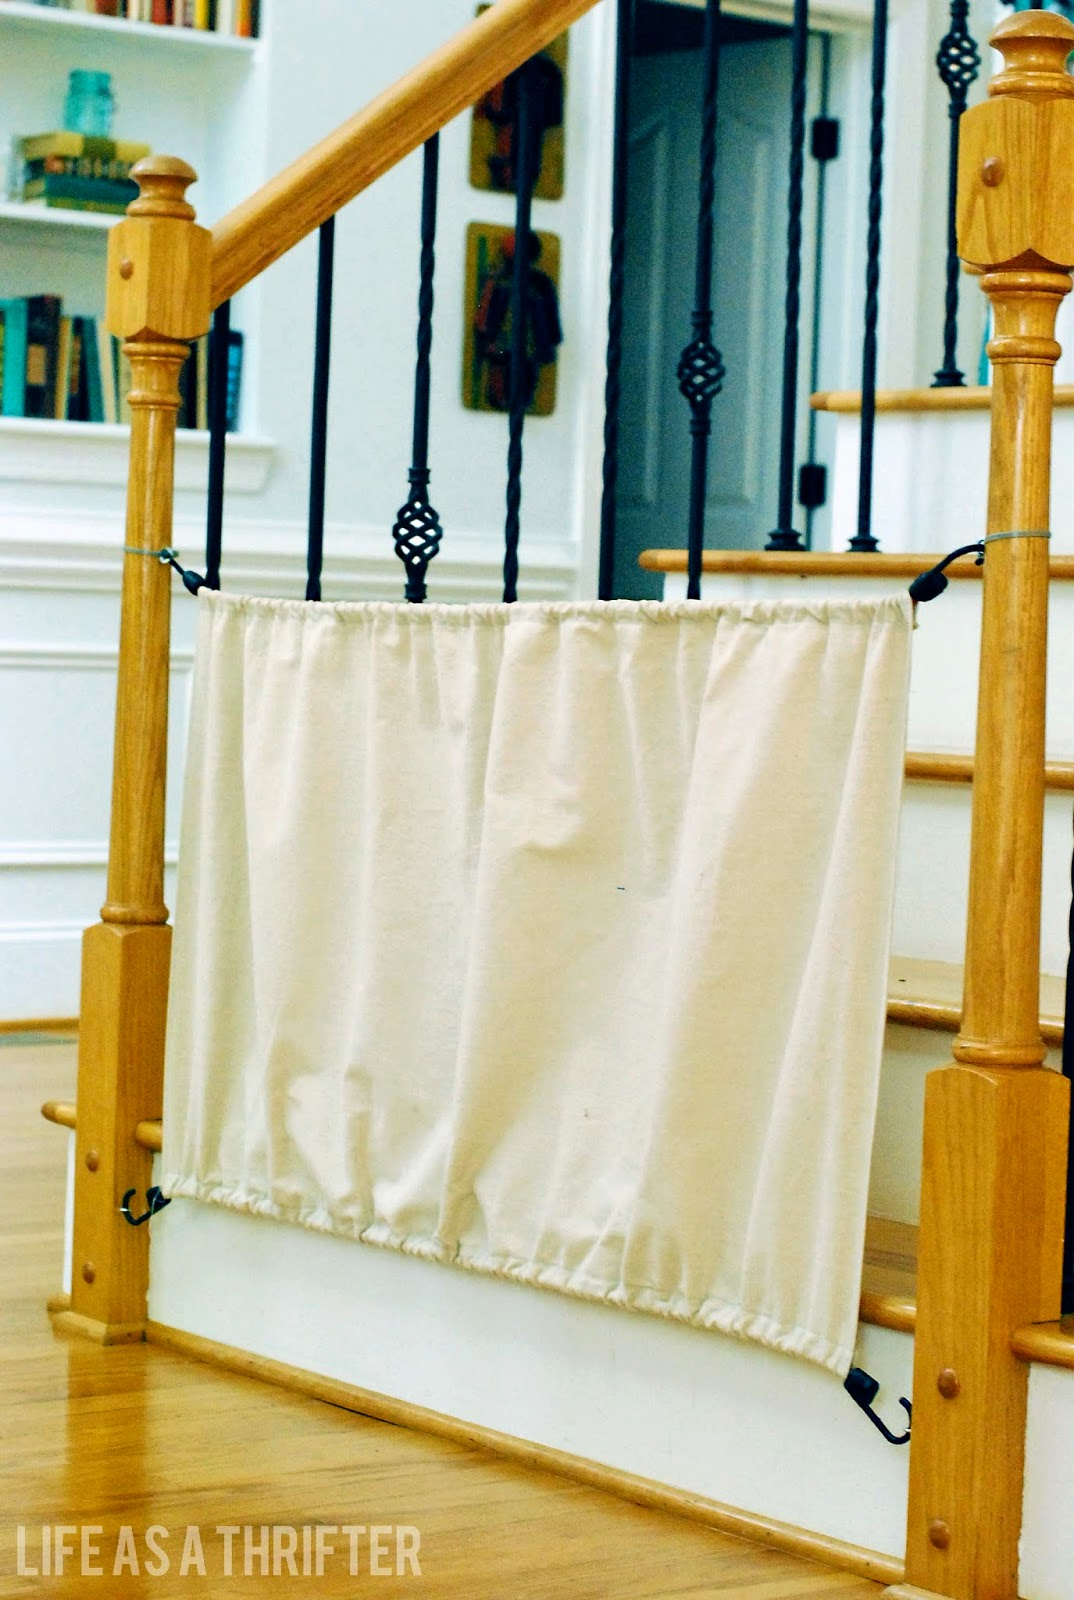 Life as a Thrifter: the Short Term Baby Gate